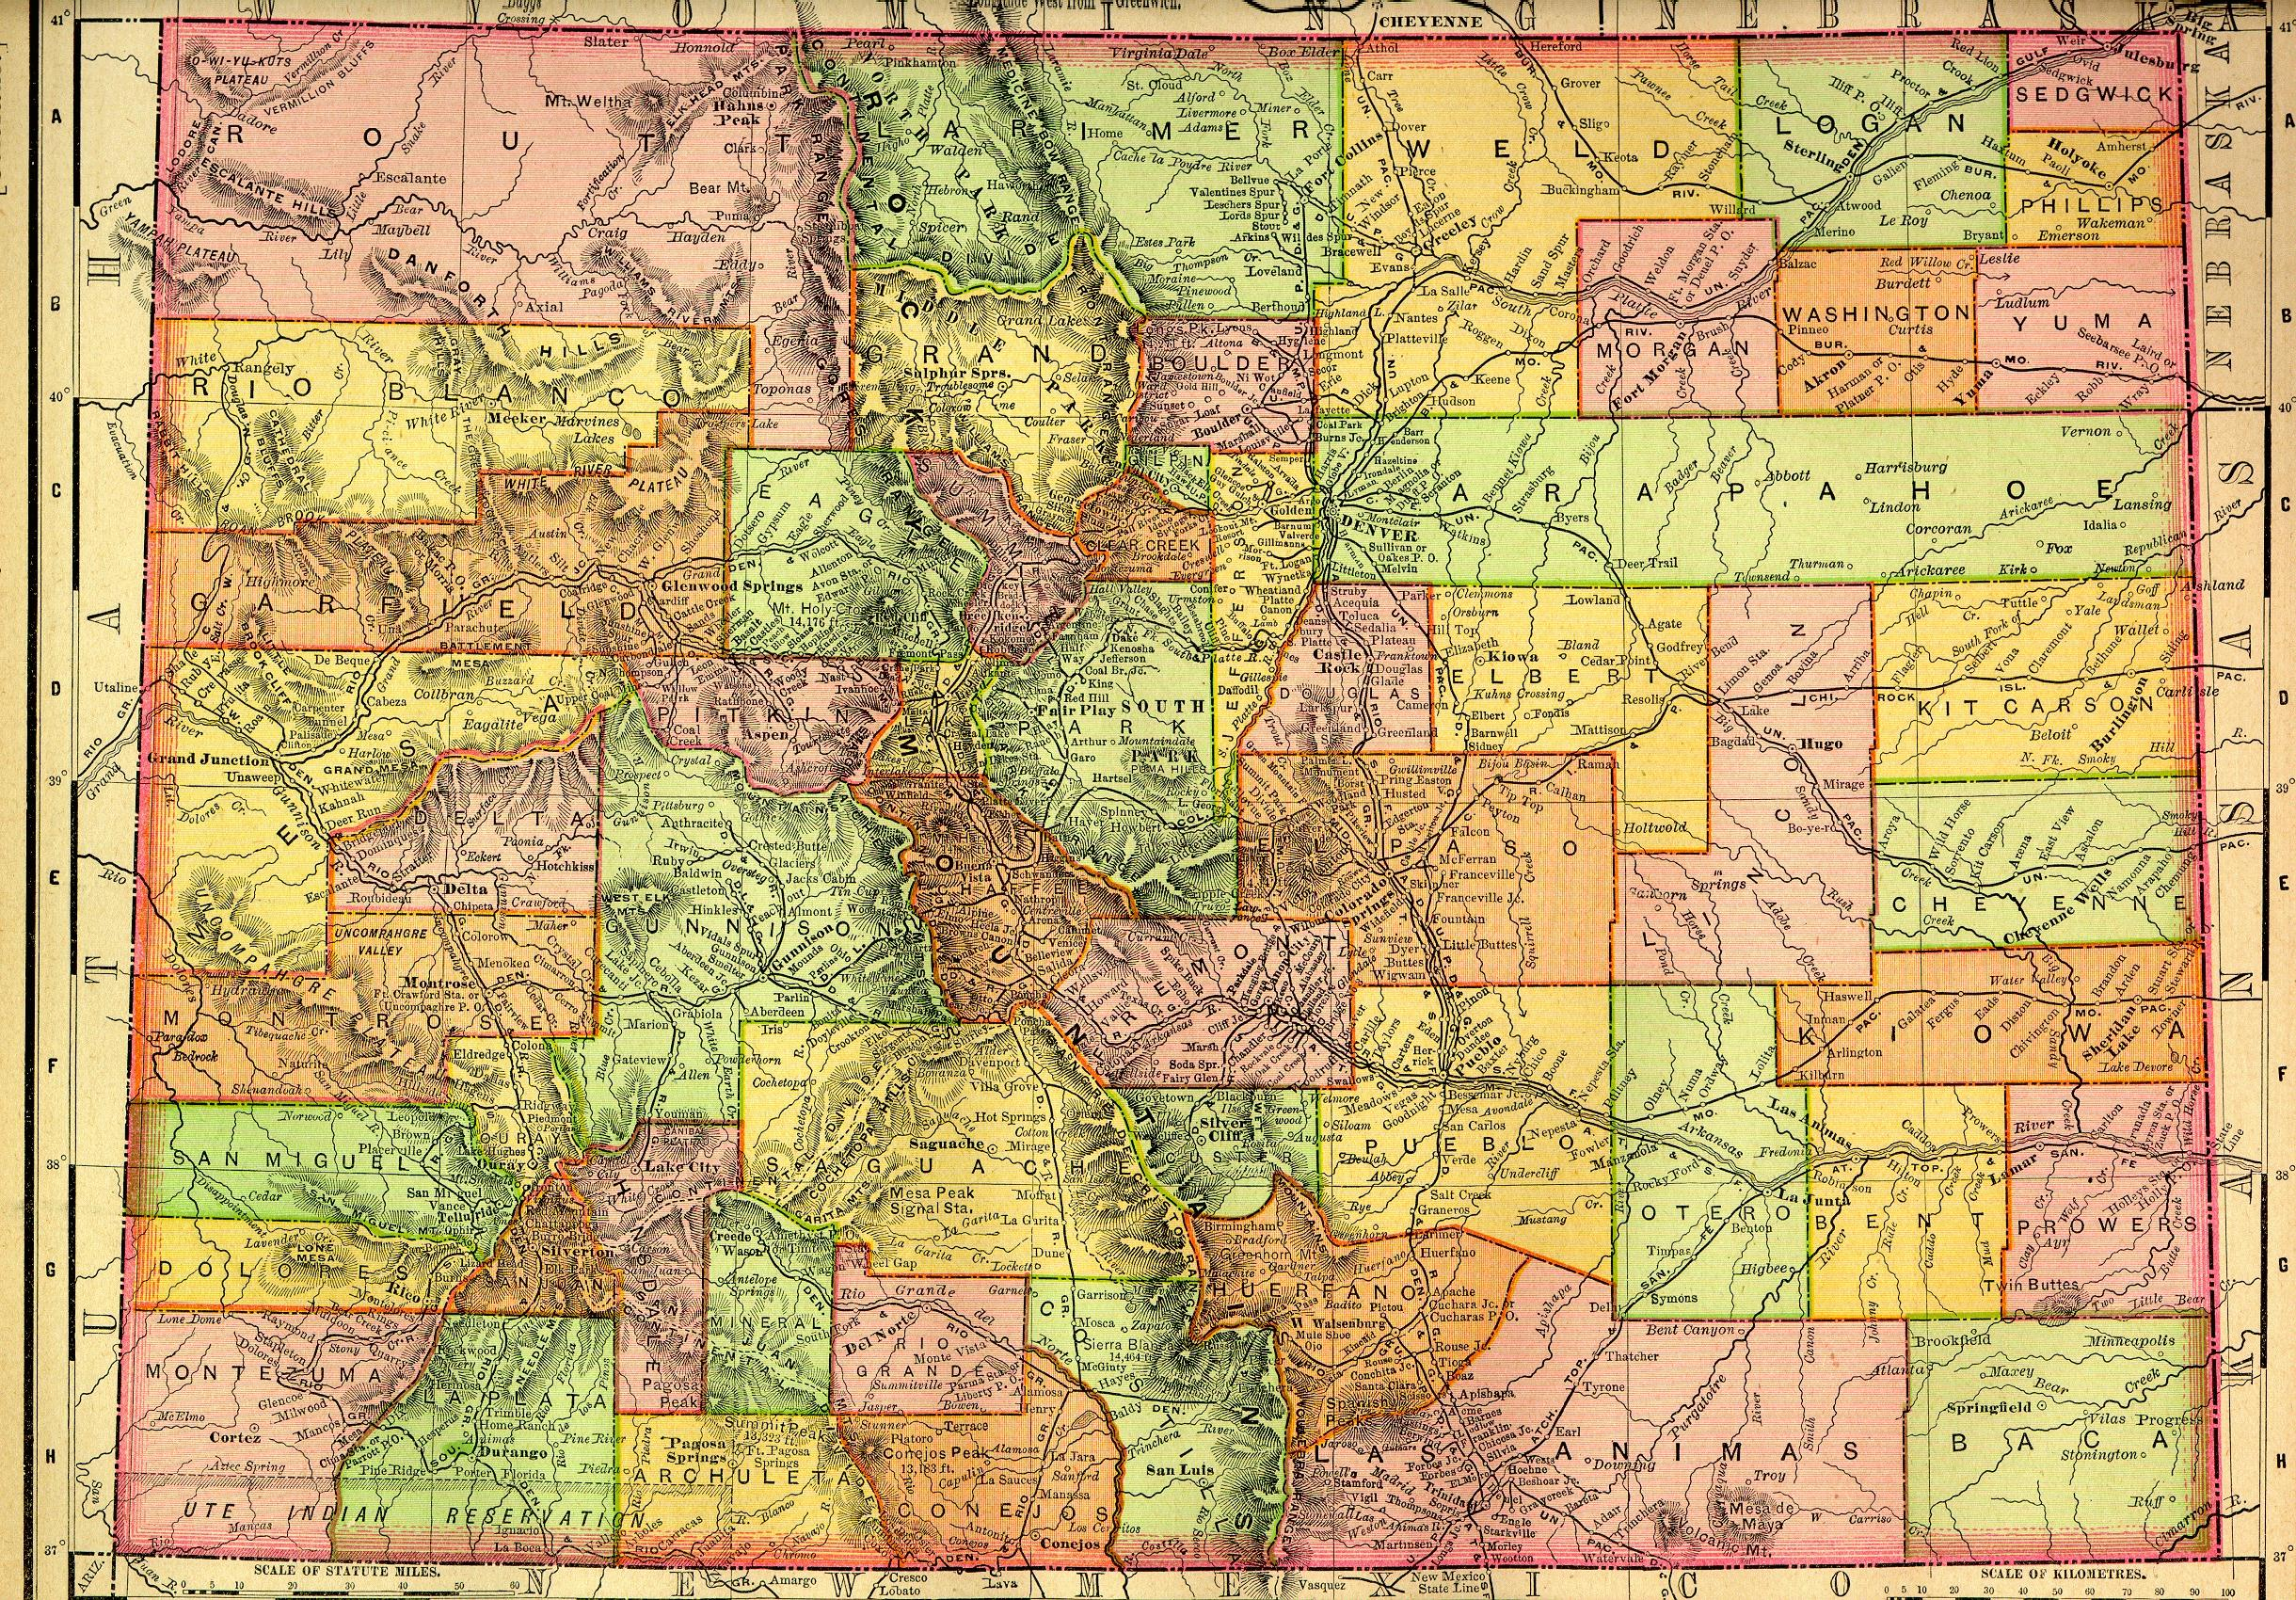 Colorado State Map Colorado Mappery - Colorado state map